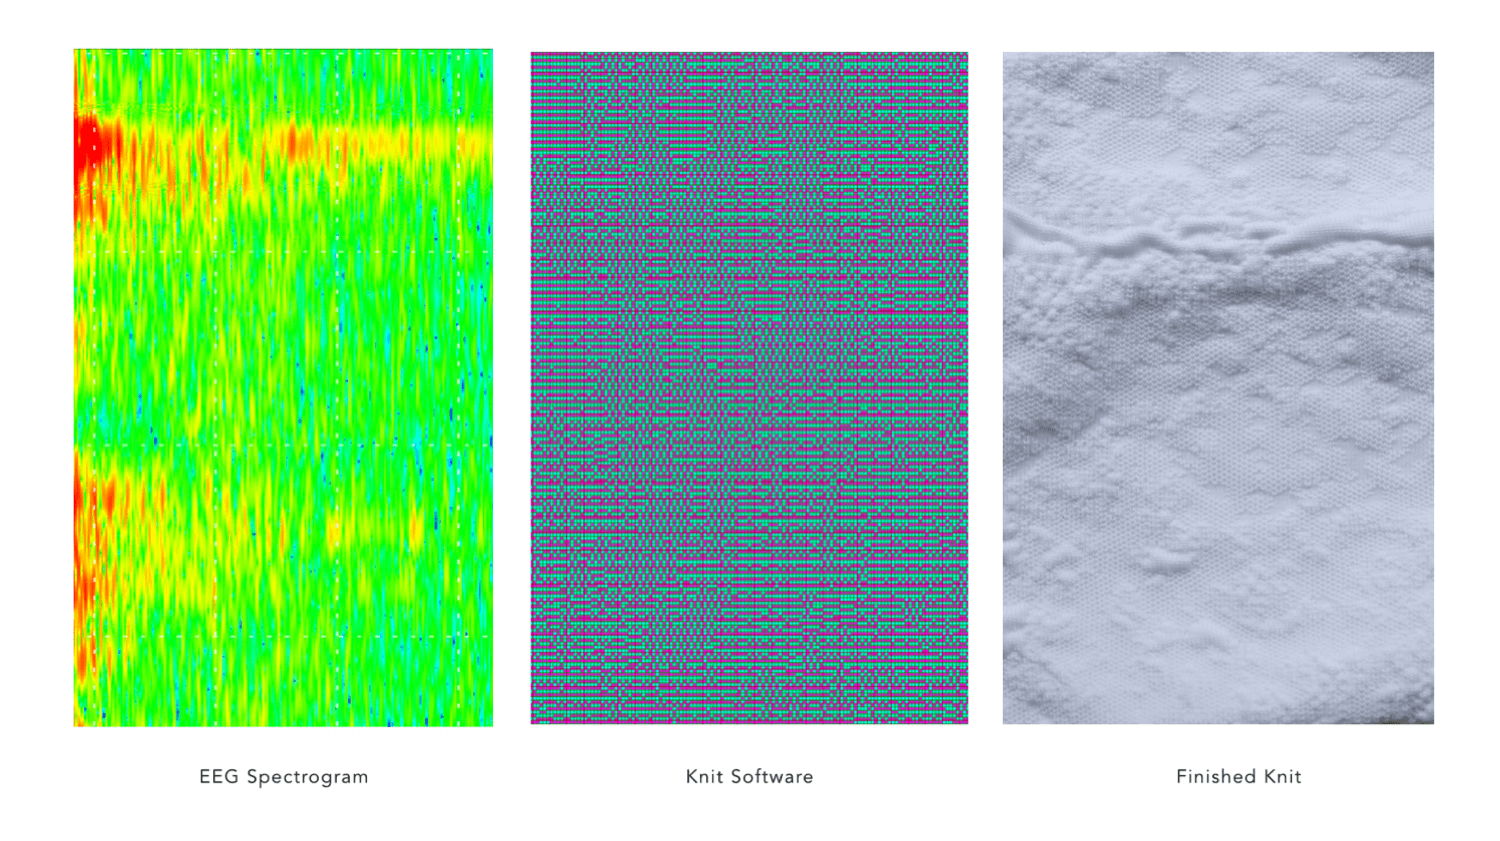 three images side by side, one showing an eeg graph, the middle showing pixels in a knitting software, and on the right the final product, a cloth piece with textures resembling the eeg graph